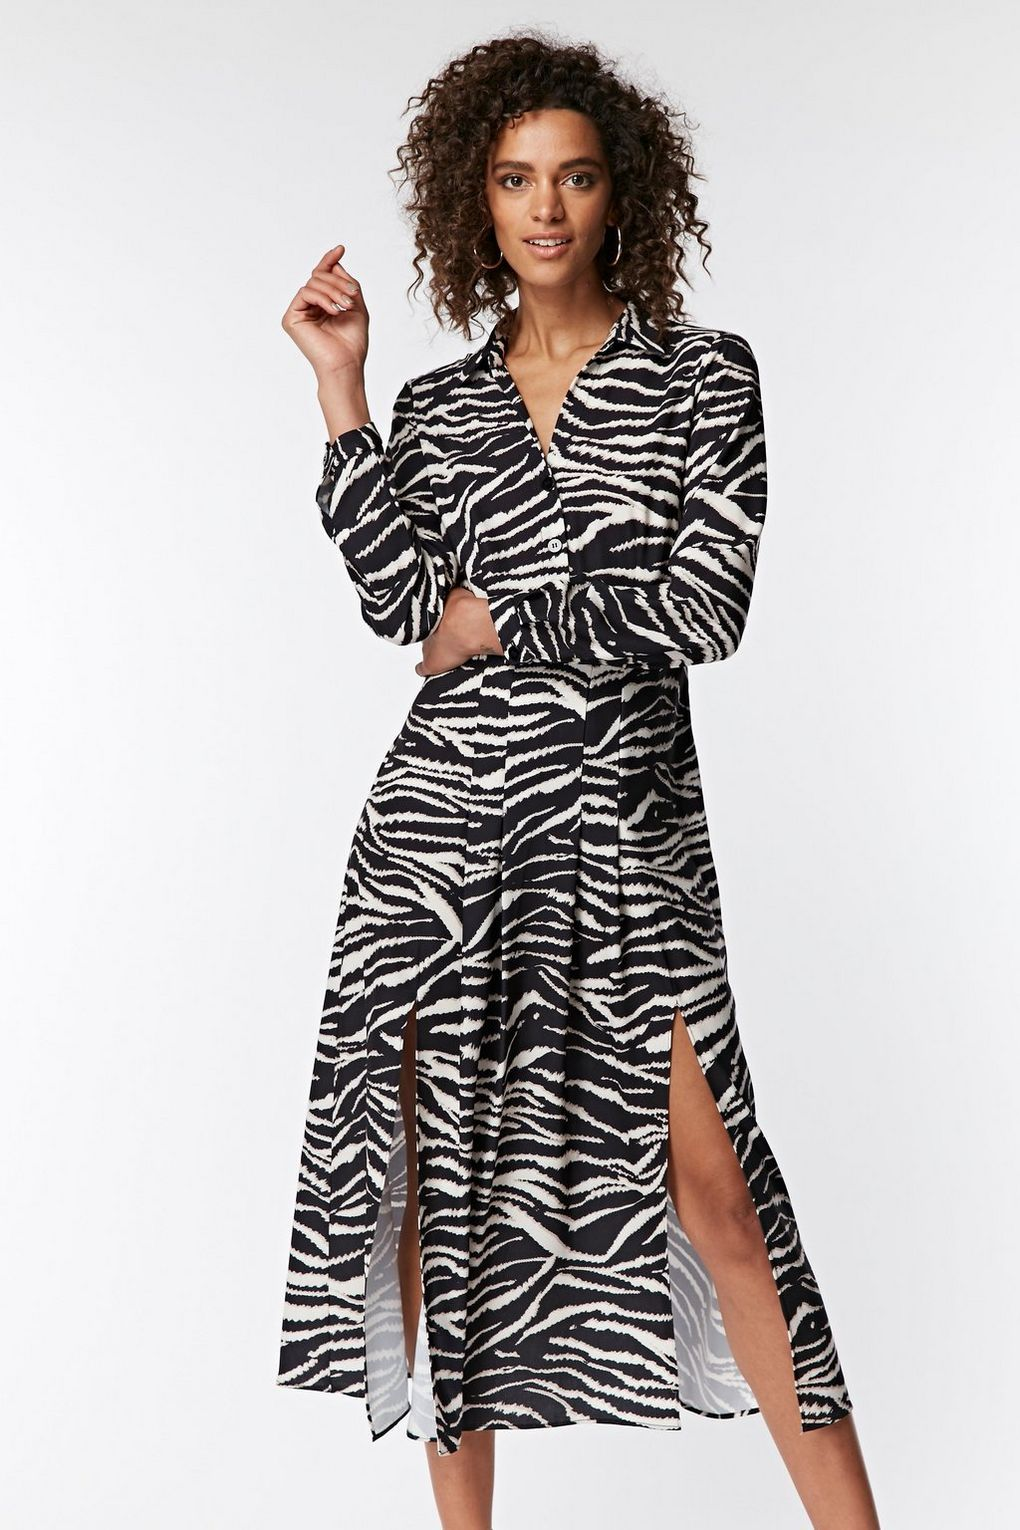 879b3ab72d74 Shirt Dress · Black And White · Tights · Model wears size 10 and is 5'7